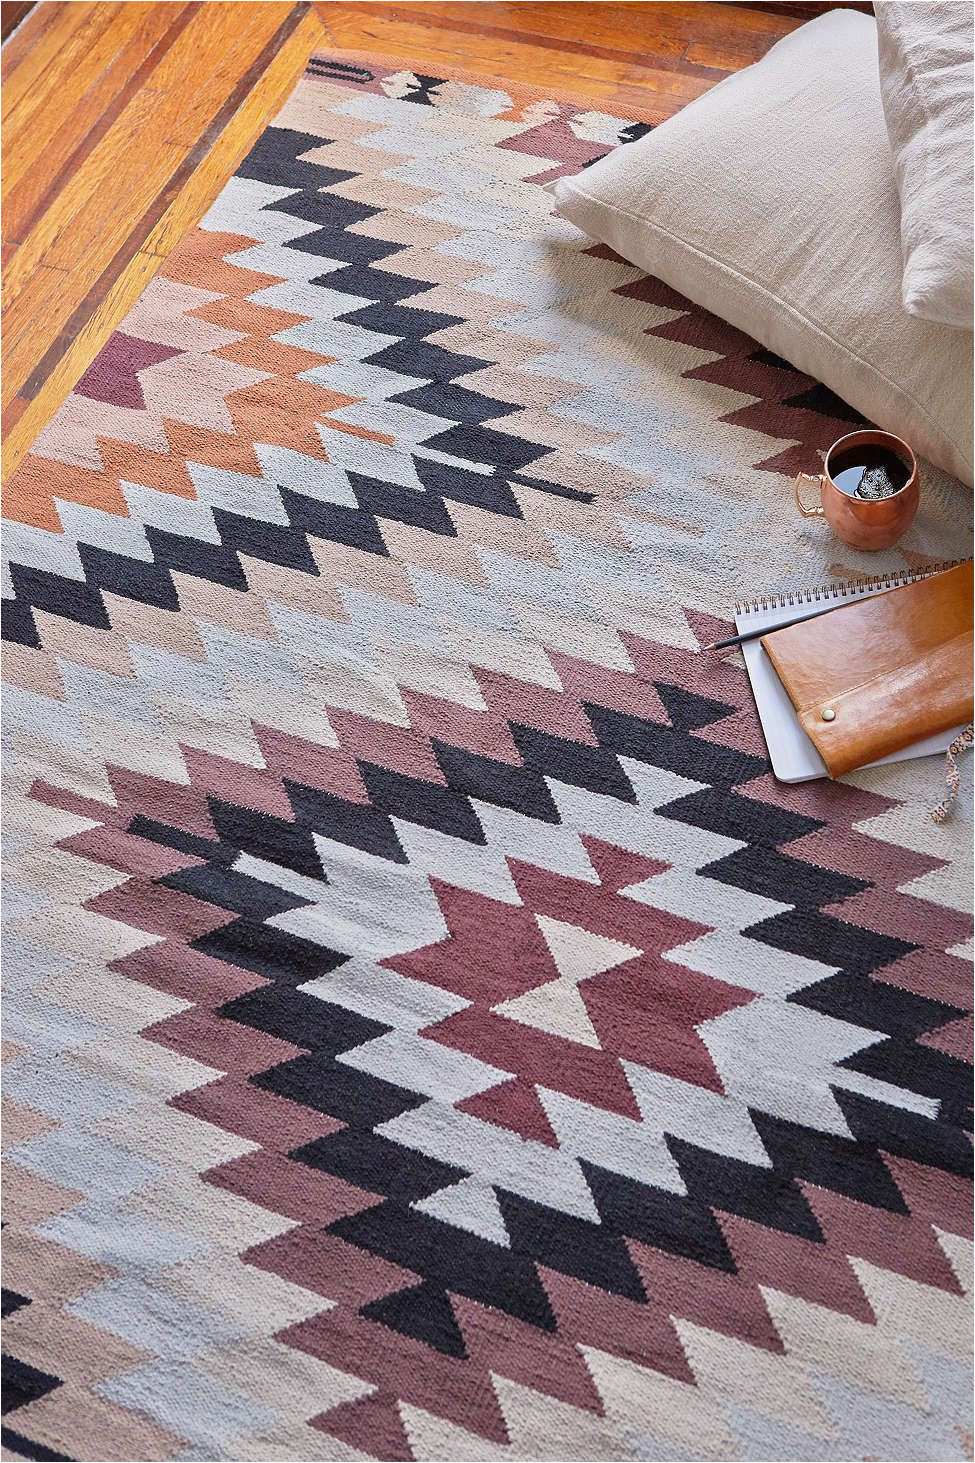 the pattern of this rug combined with these colors makes it the ideal accent piece in any room